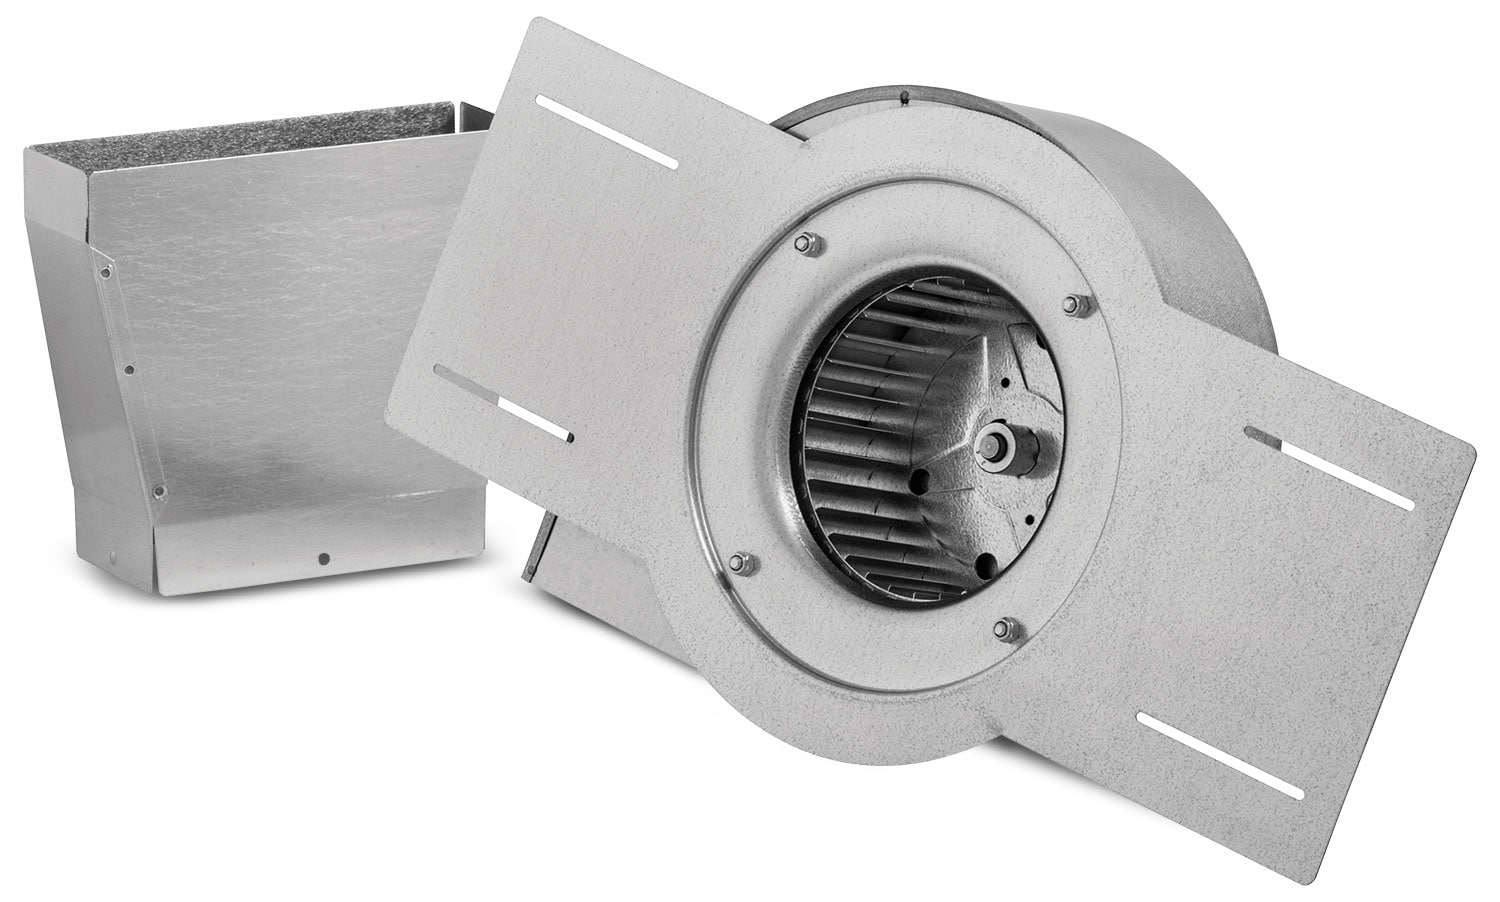 Appliance Accessories - Electrolux 600 CFM Internal Blower for Downdraft Vent System - EI06DDPIKS